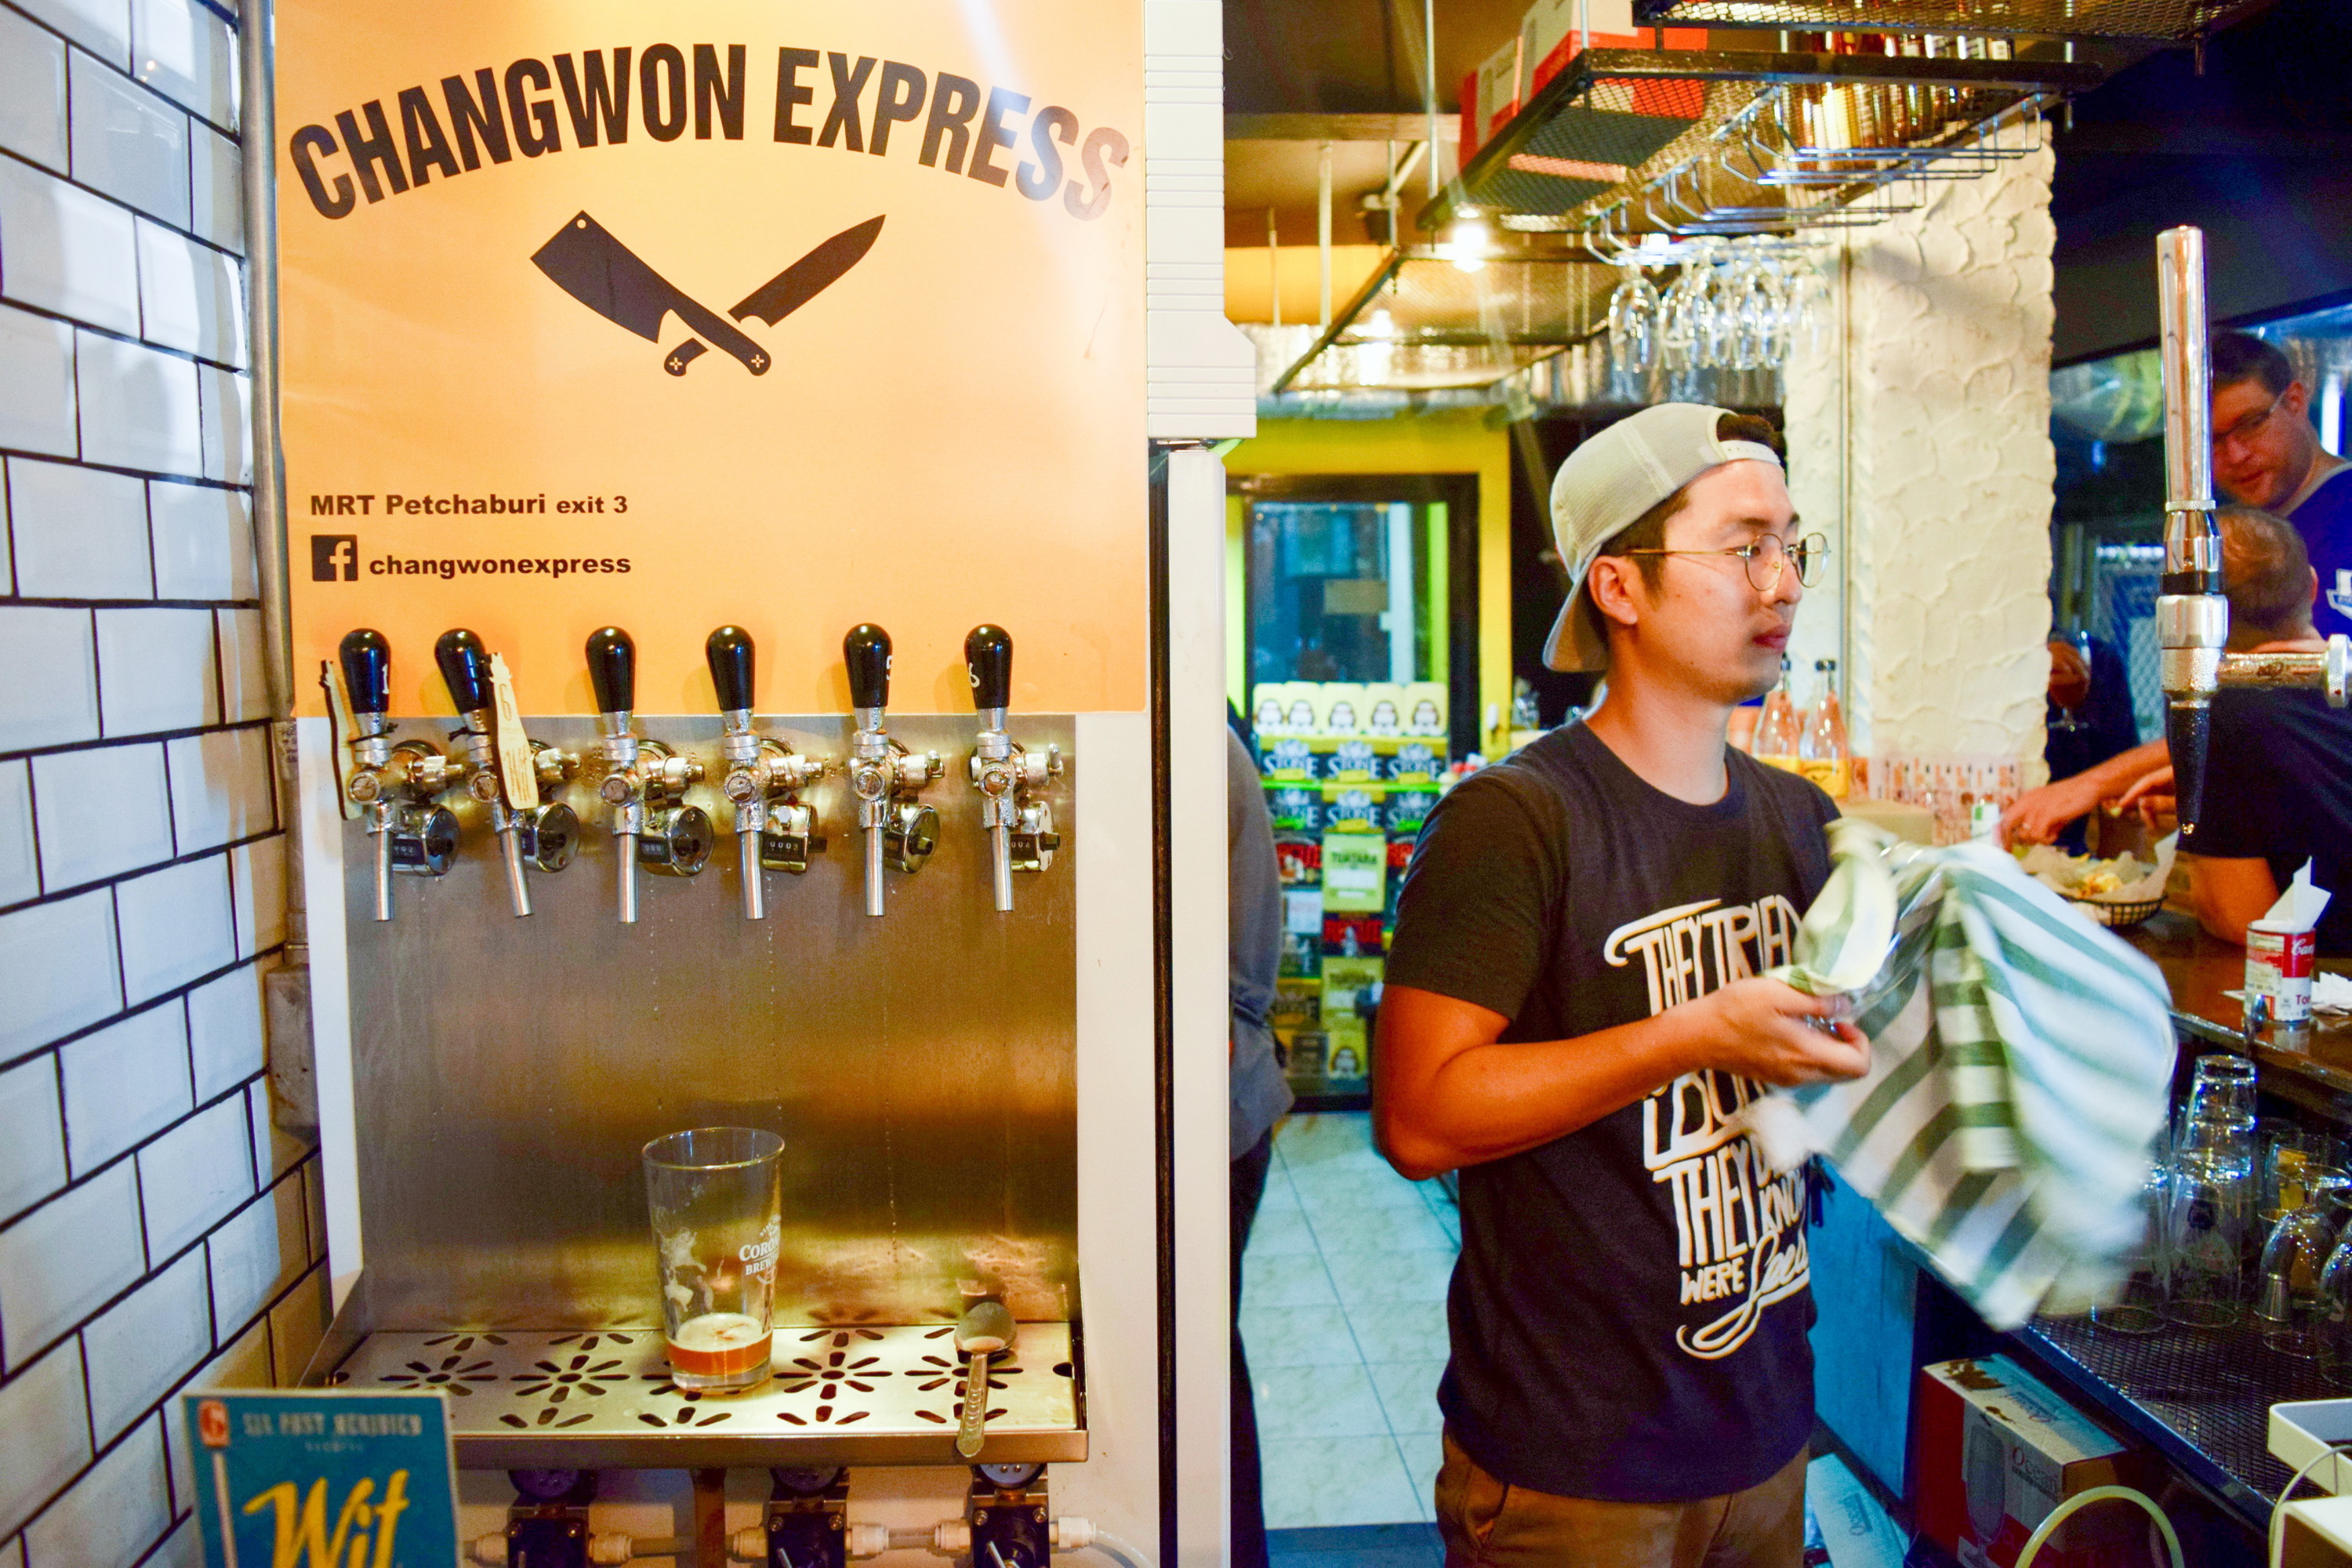 [NEW] Changwon Express